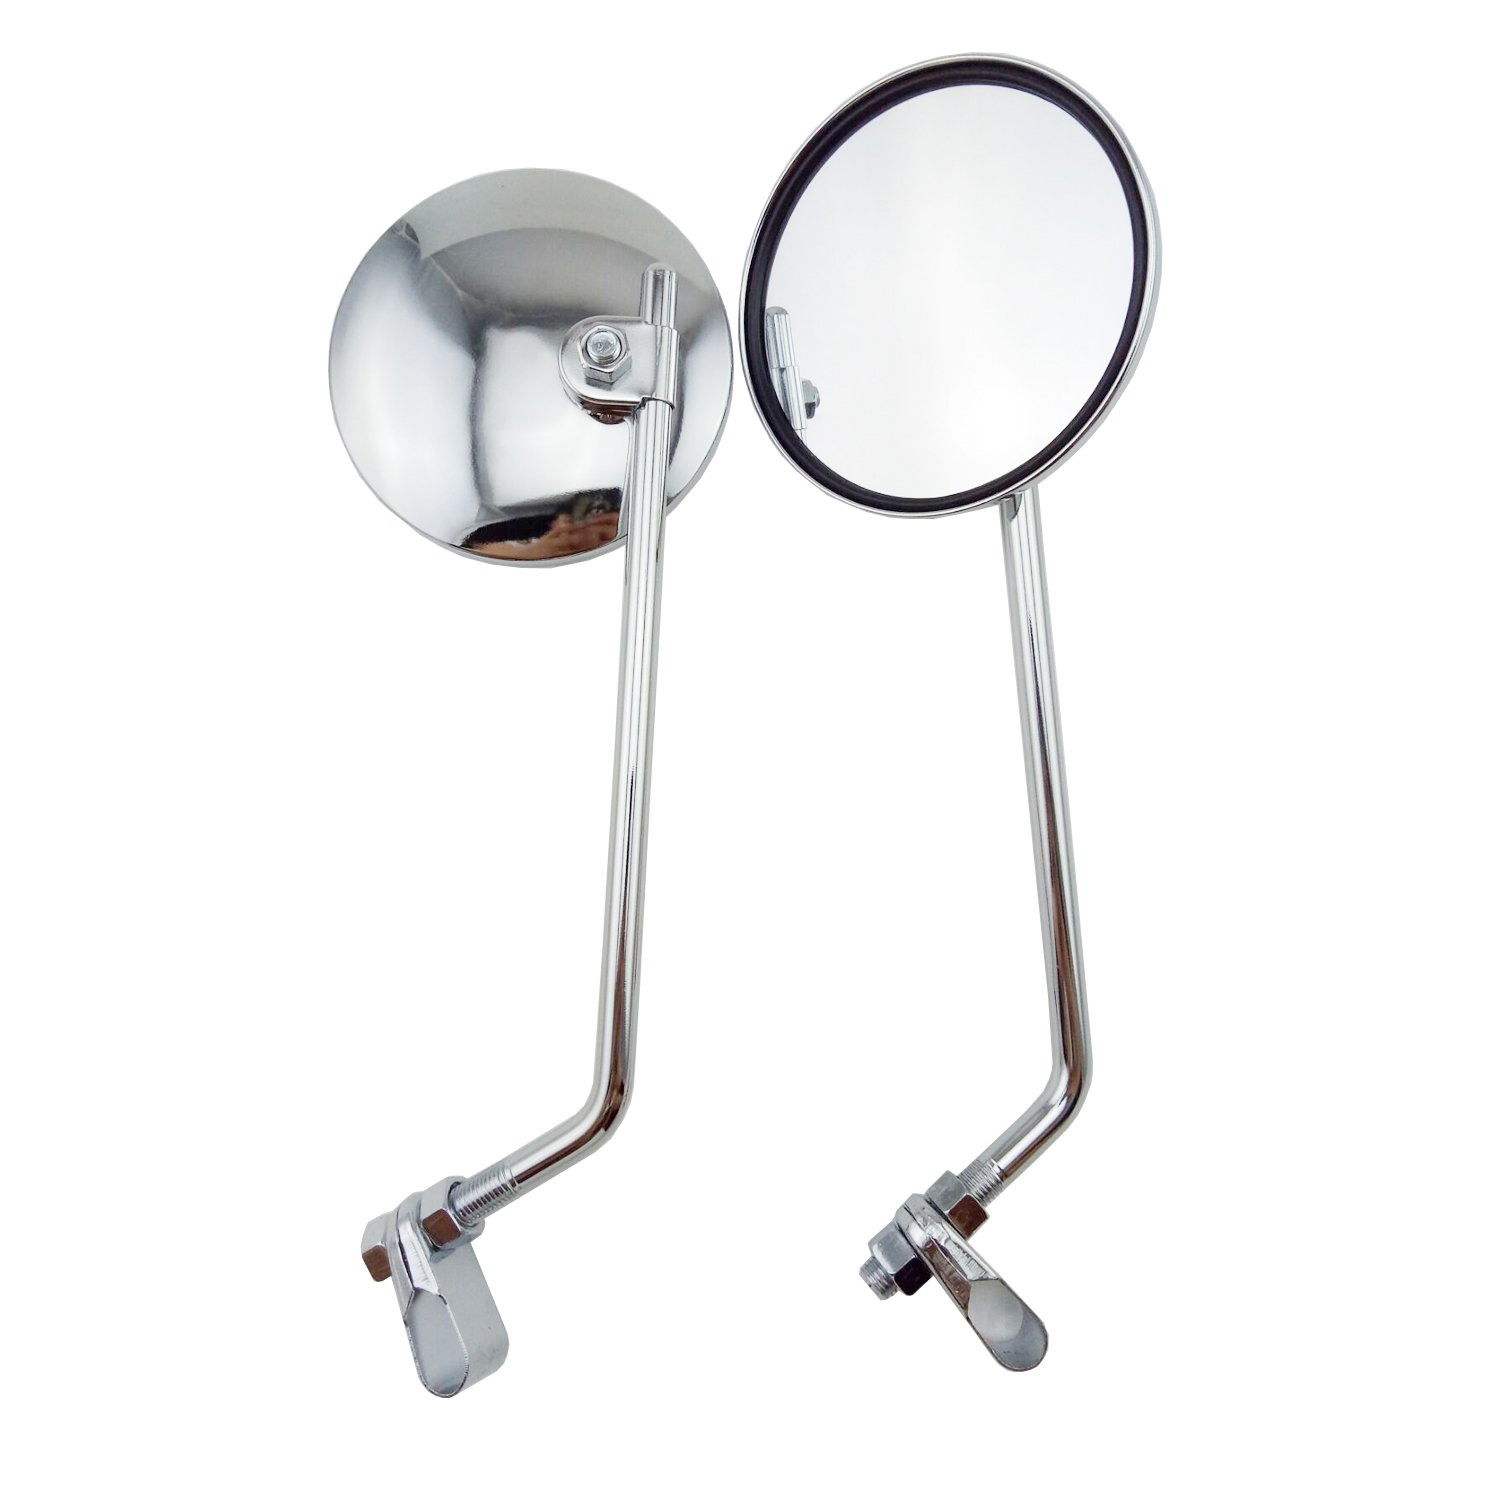 OKSTNO 2pcs Custom Chrome Rearview Mirror Free Adapters Mirrors Fits Most Motorcycle